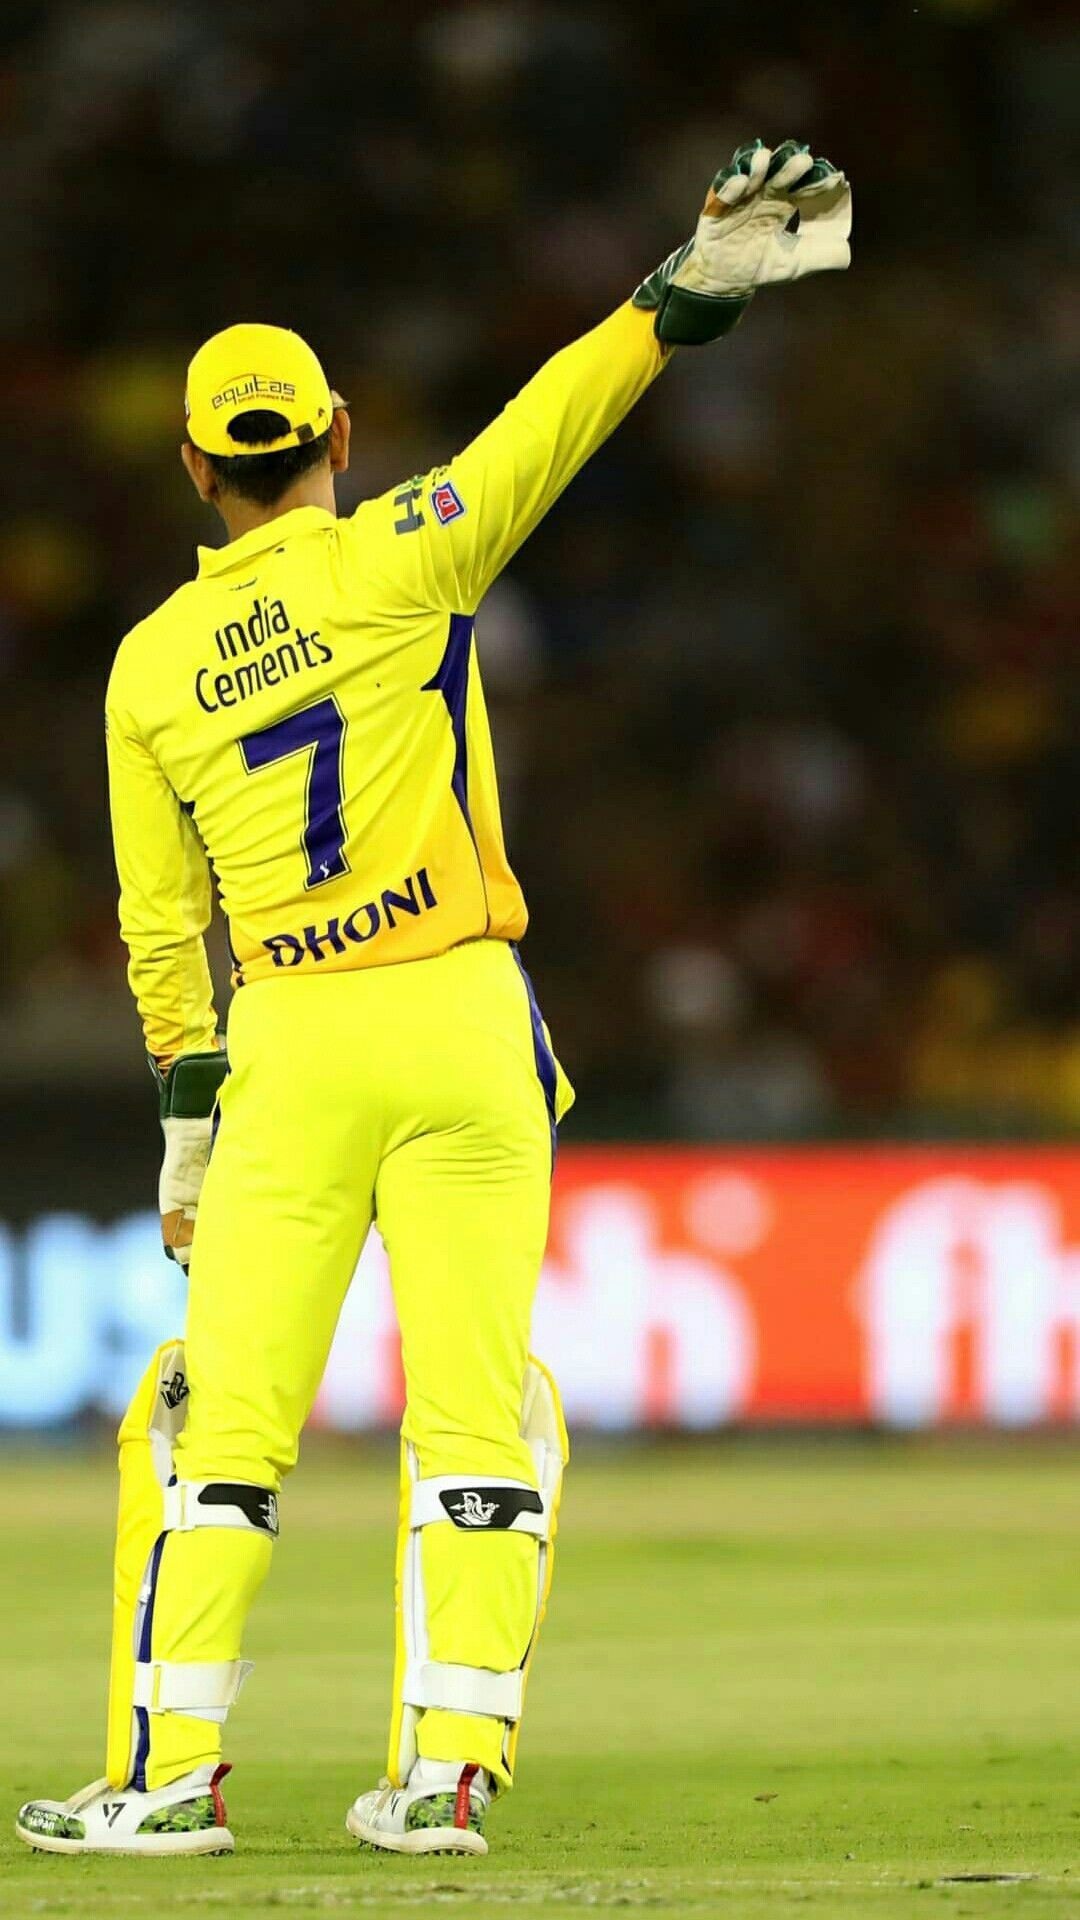 Csk Wallpapers Hd Resolution For Iphone Wallpaper On Hupages Com If You Like It Dont Forget Save It Or Dhoni Wallpapers Ms Dhoni Wallpapers Cricket Wallpapers